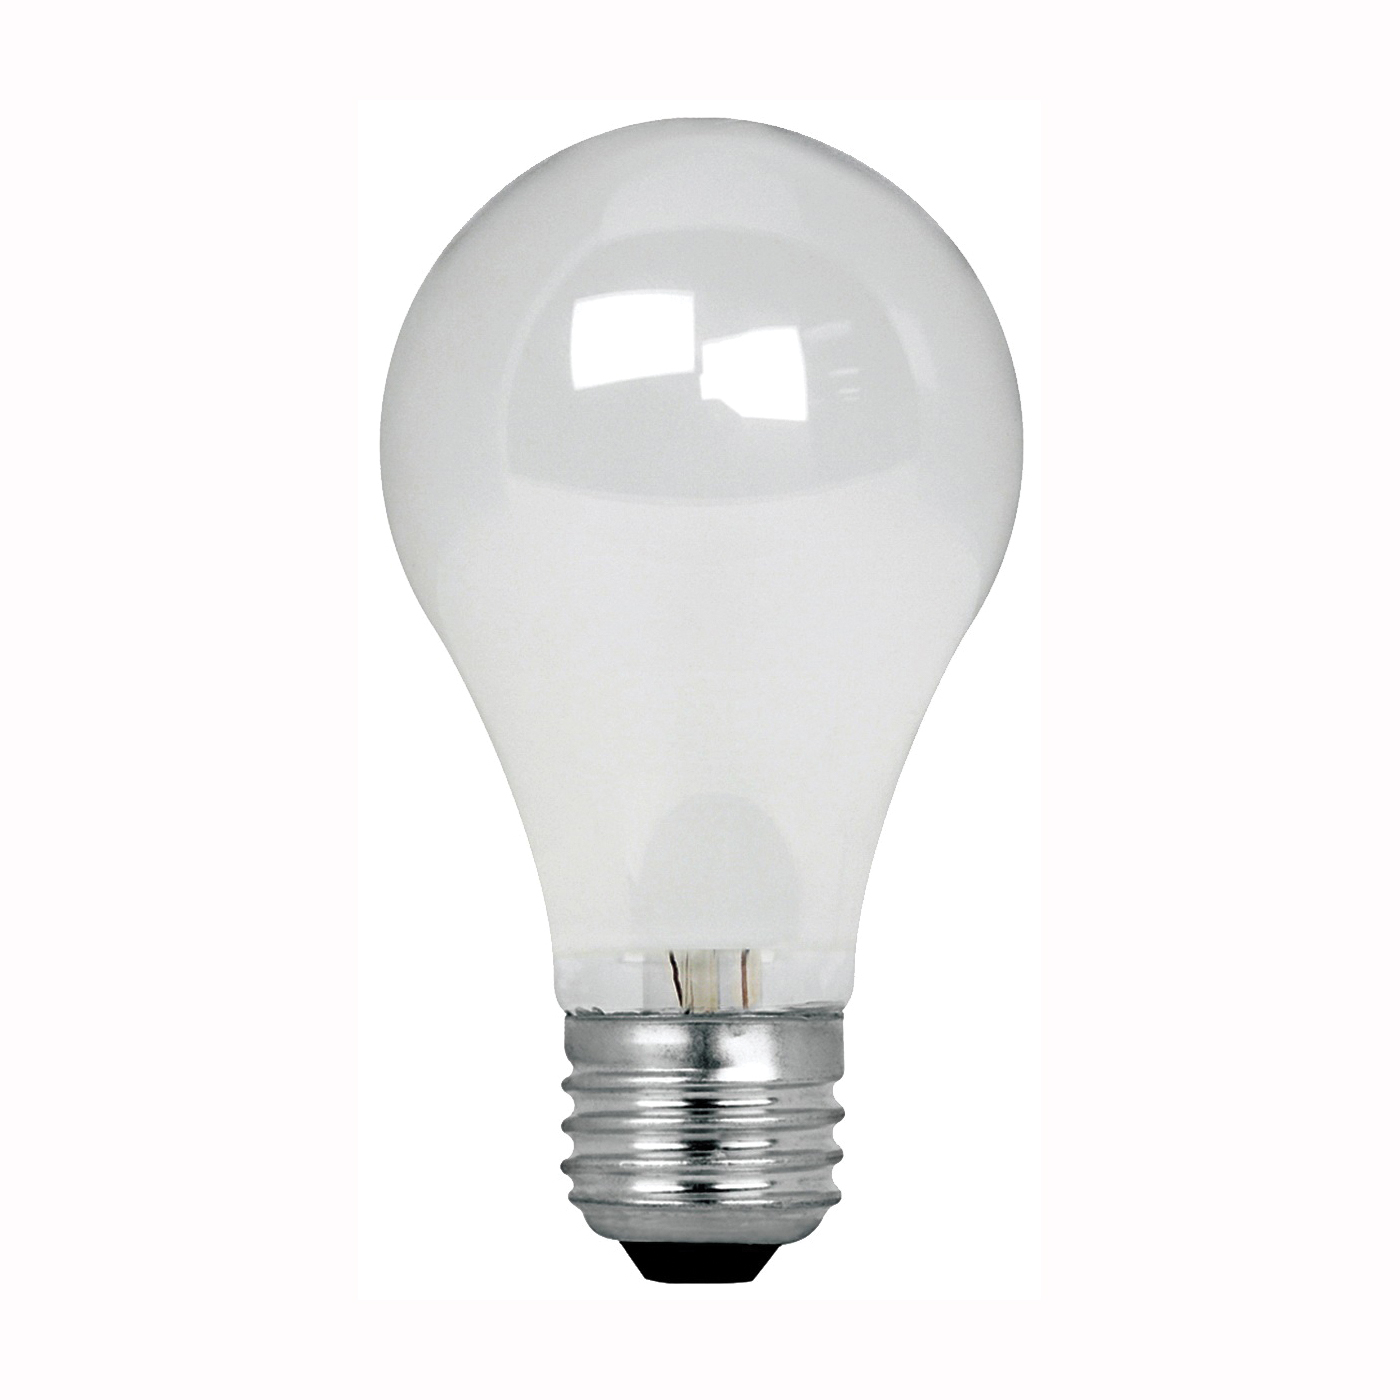 Picture of Feit Electric Q72A/W/DL/4/RP Halogen Lamp, 72 W, Medium E26 Lamp Base, A19 Lamp, Soft White Light, 1150 Lumens